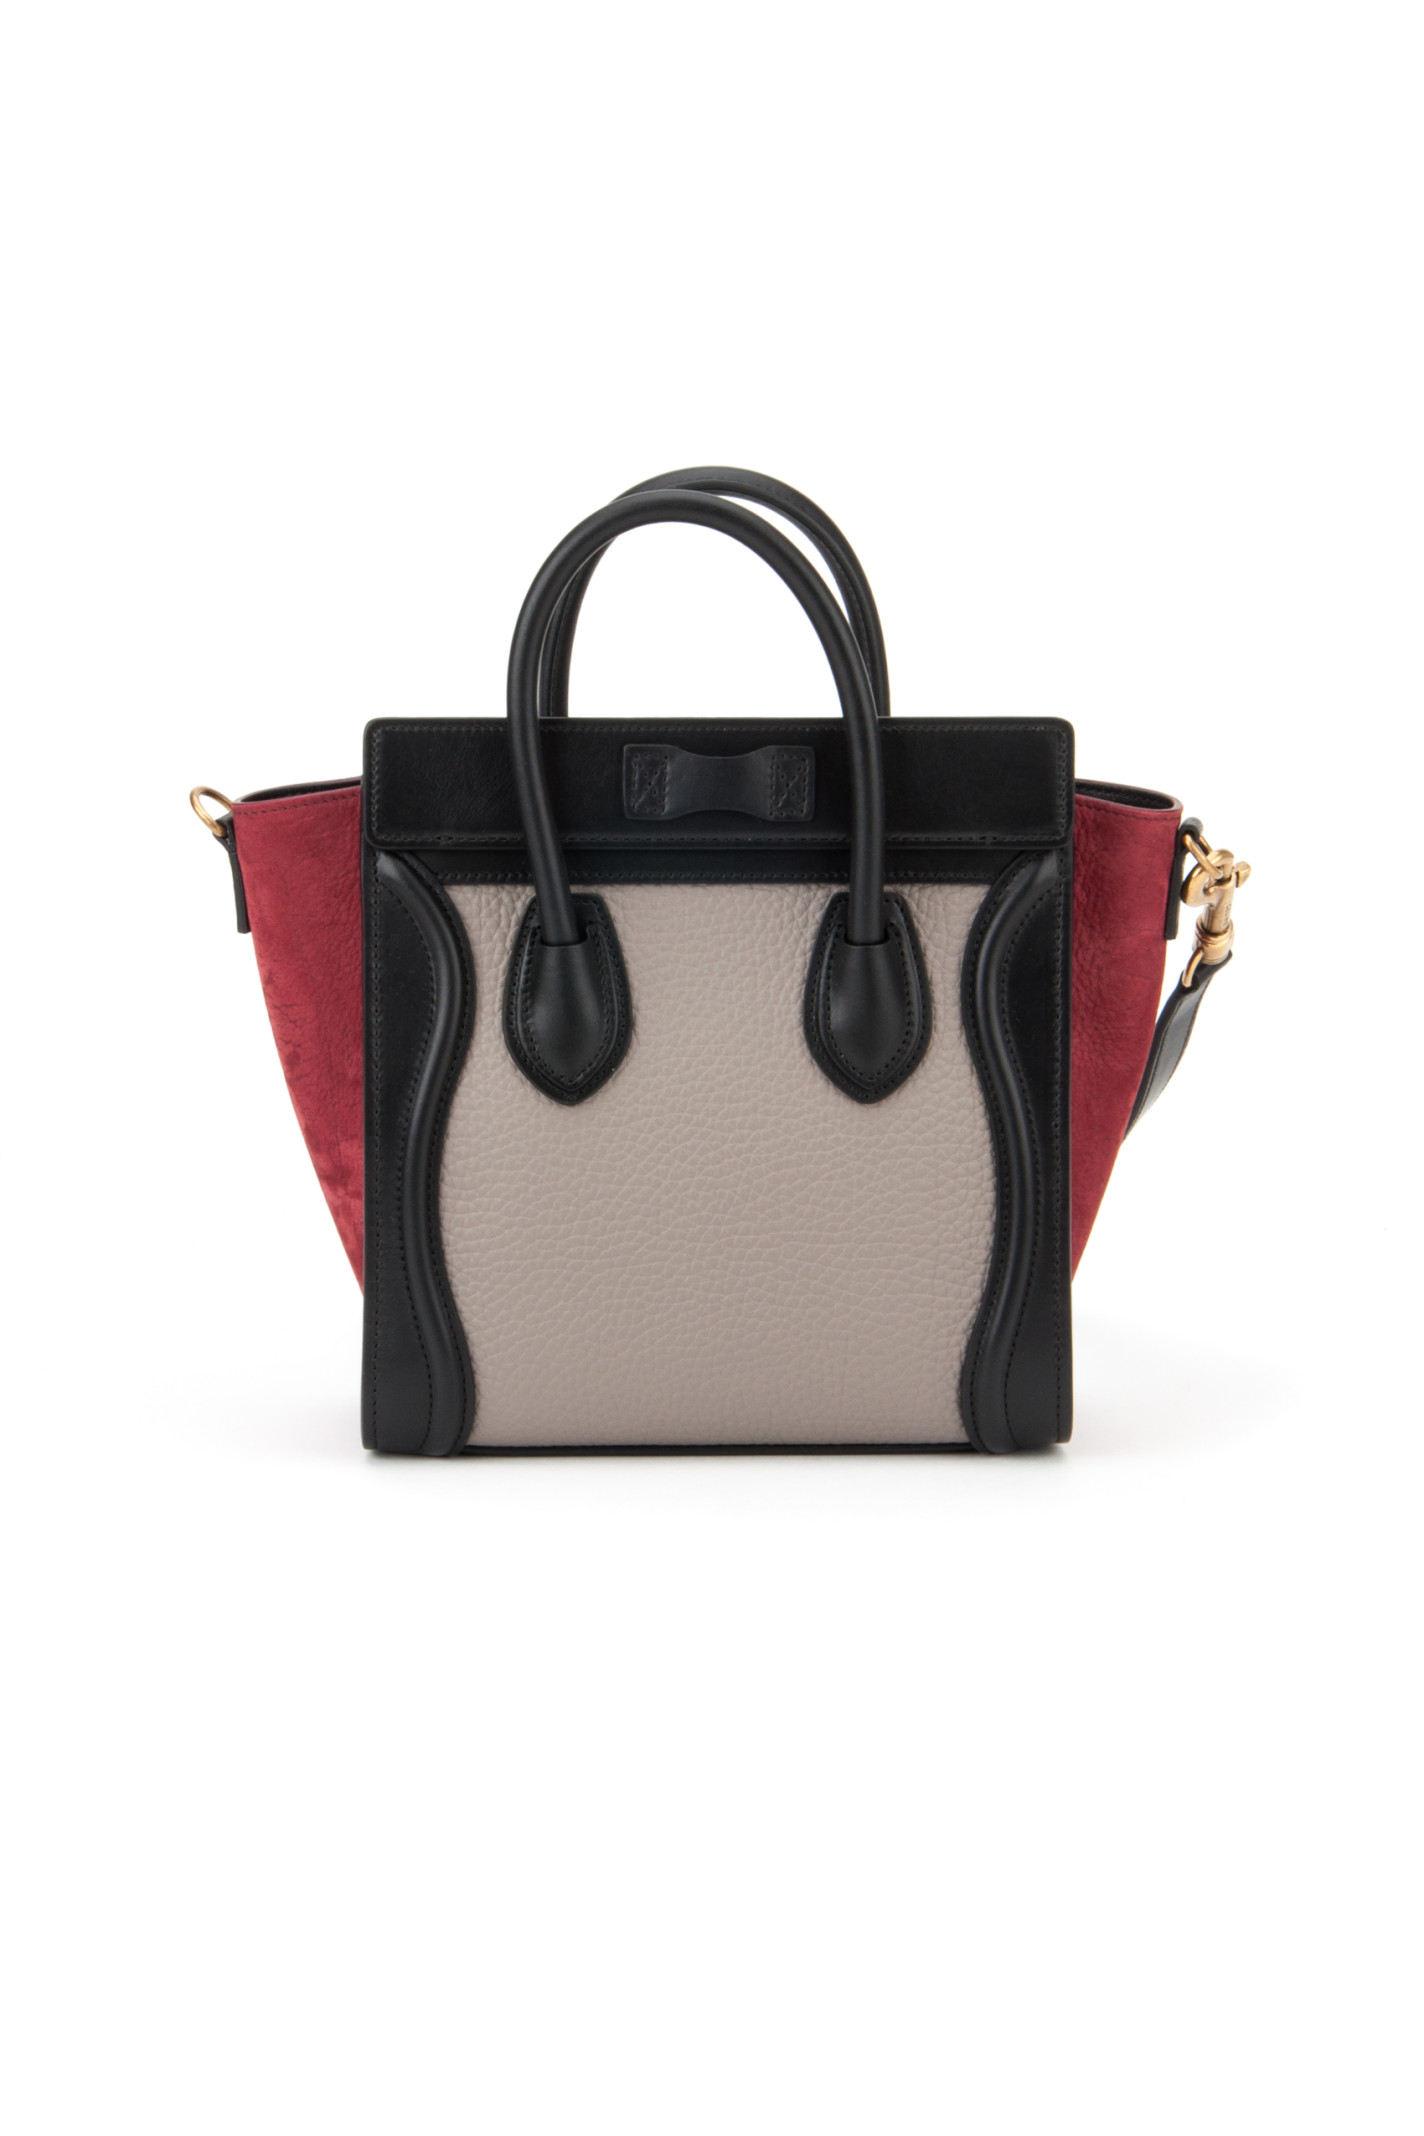 celine red leather handbag